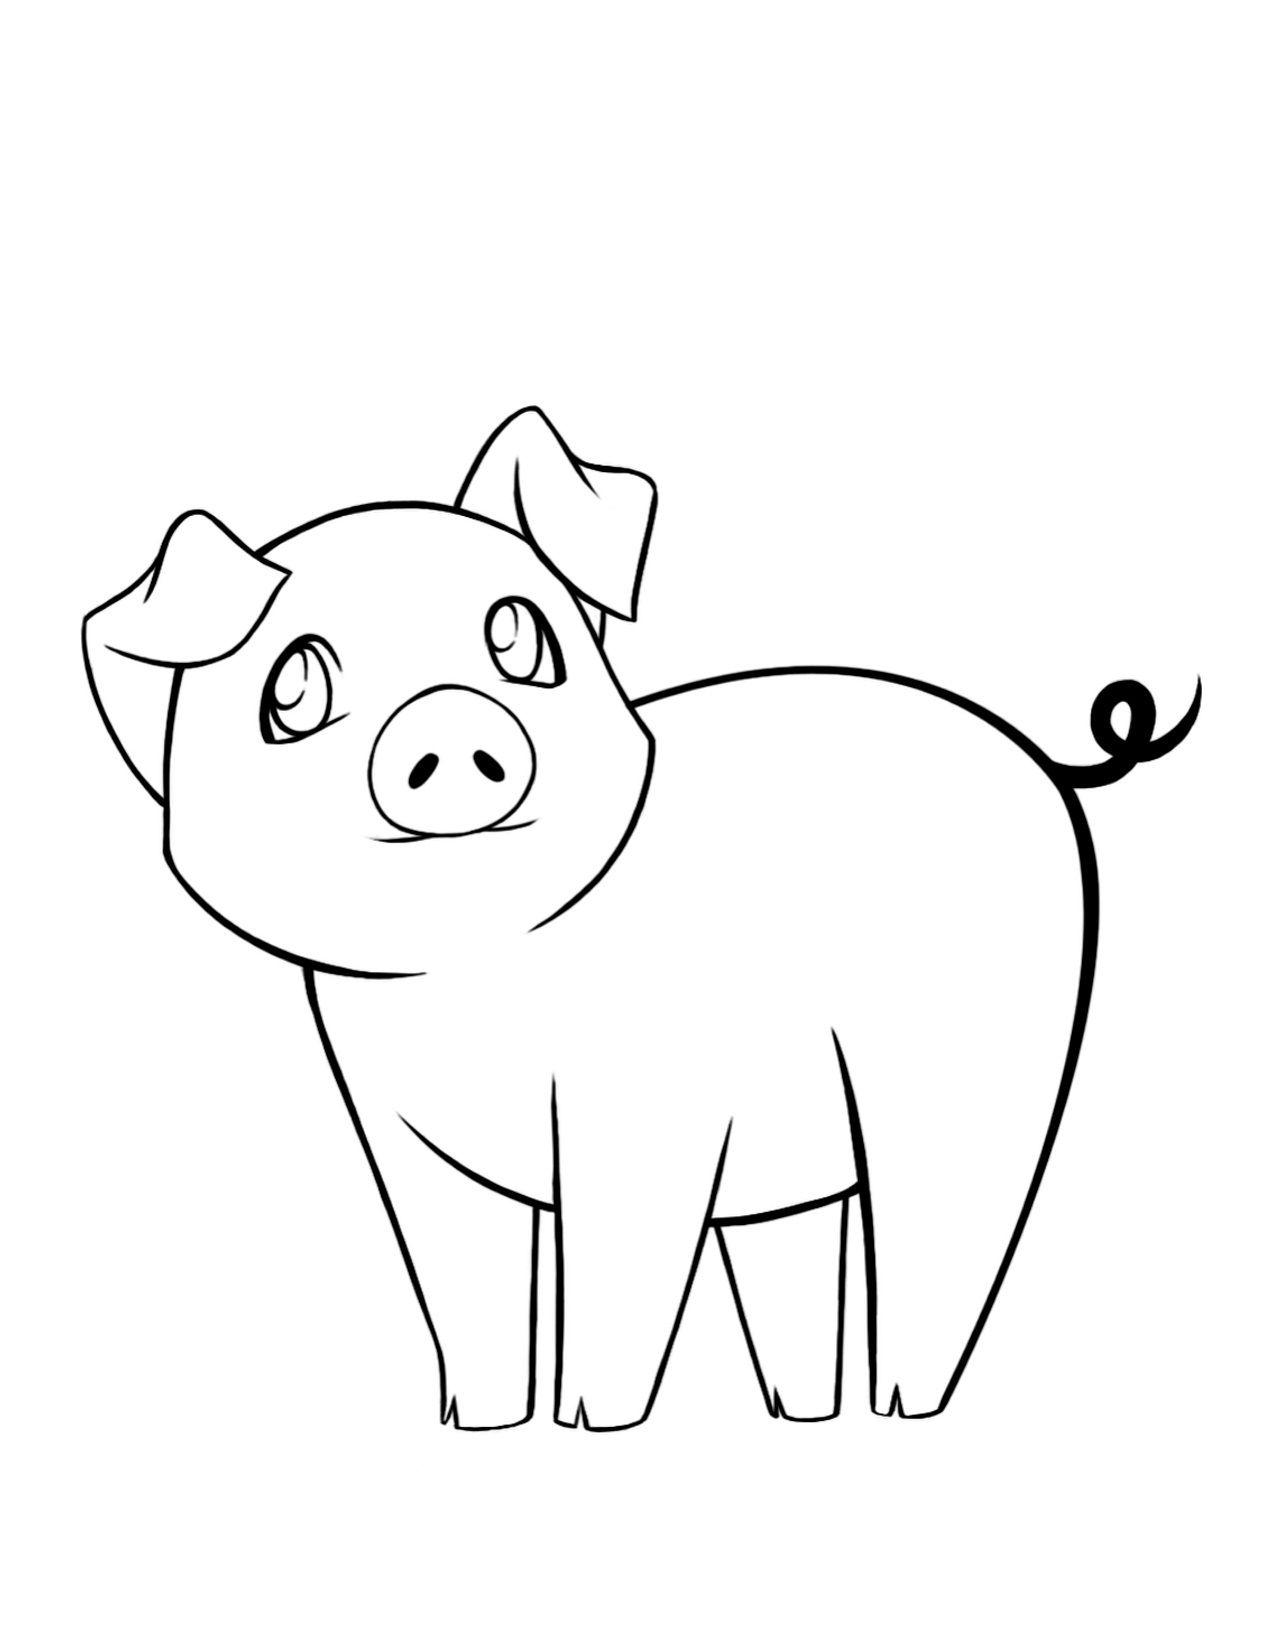 pig to colour printable easy pig coloring pages for kids to colour pig